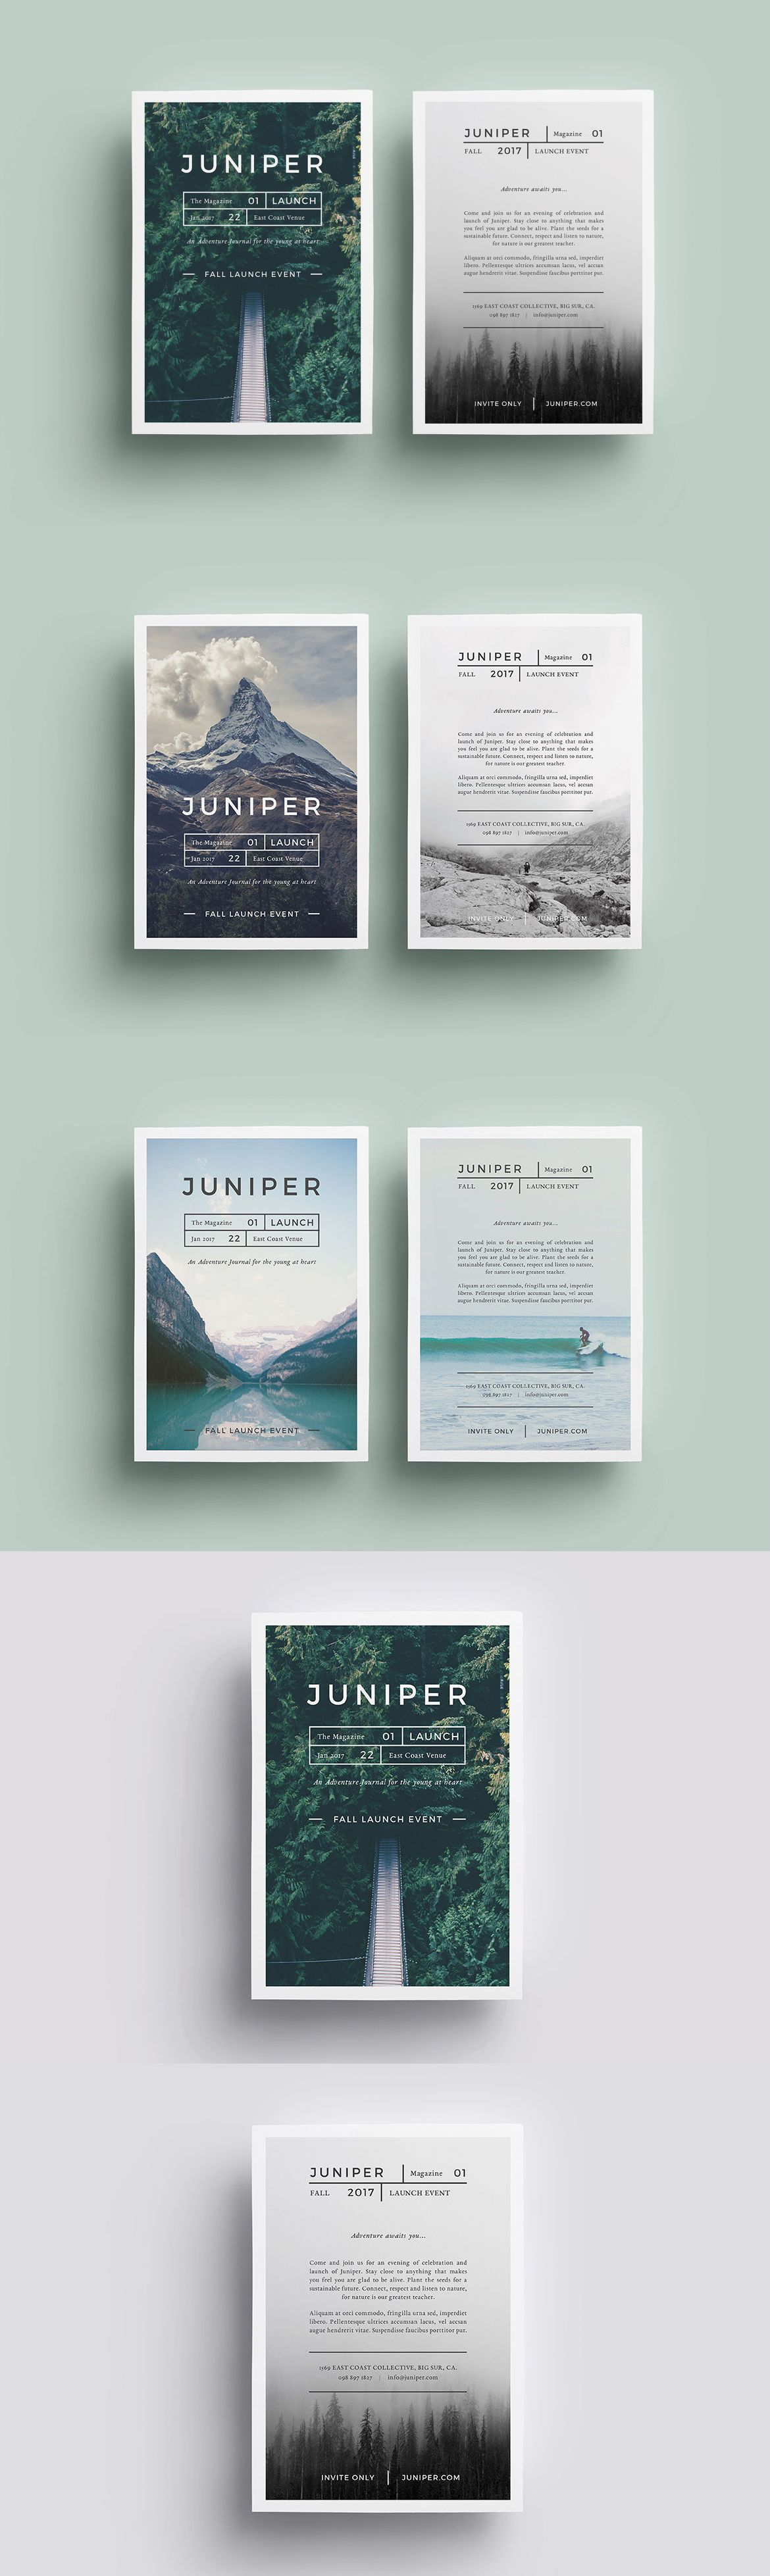 A Beautiful Multipurpose Flyer Templats InDesign INDD | Graphic ...